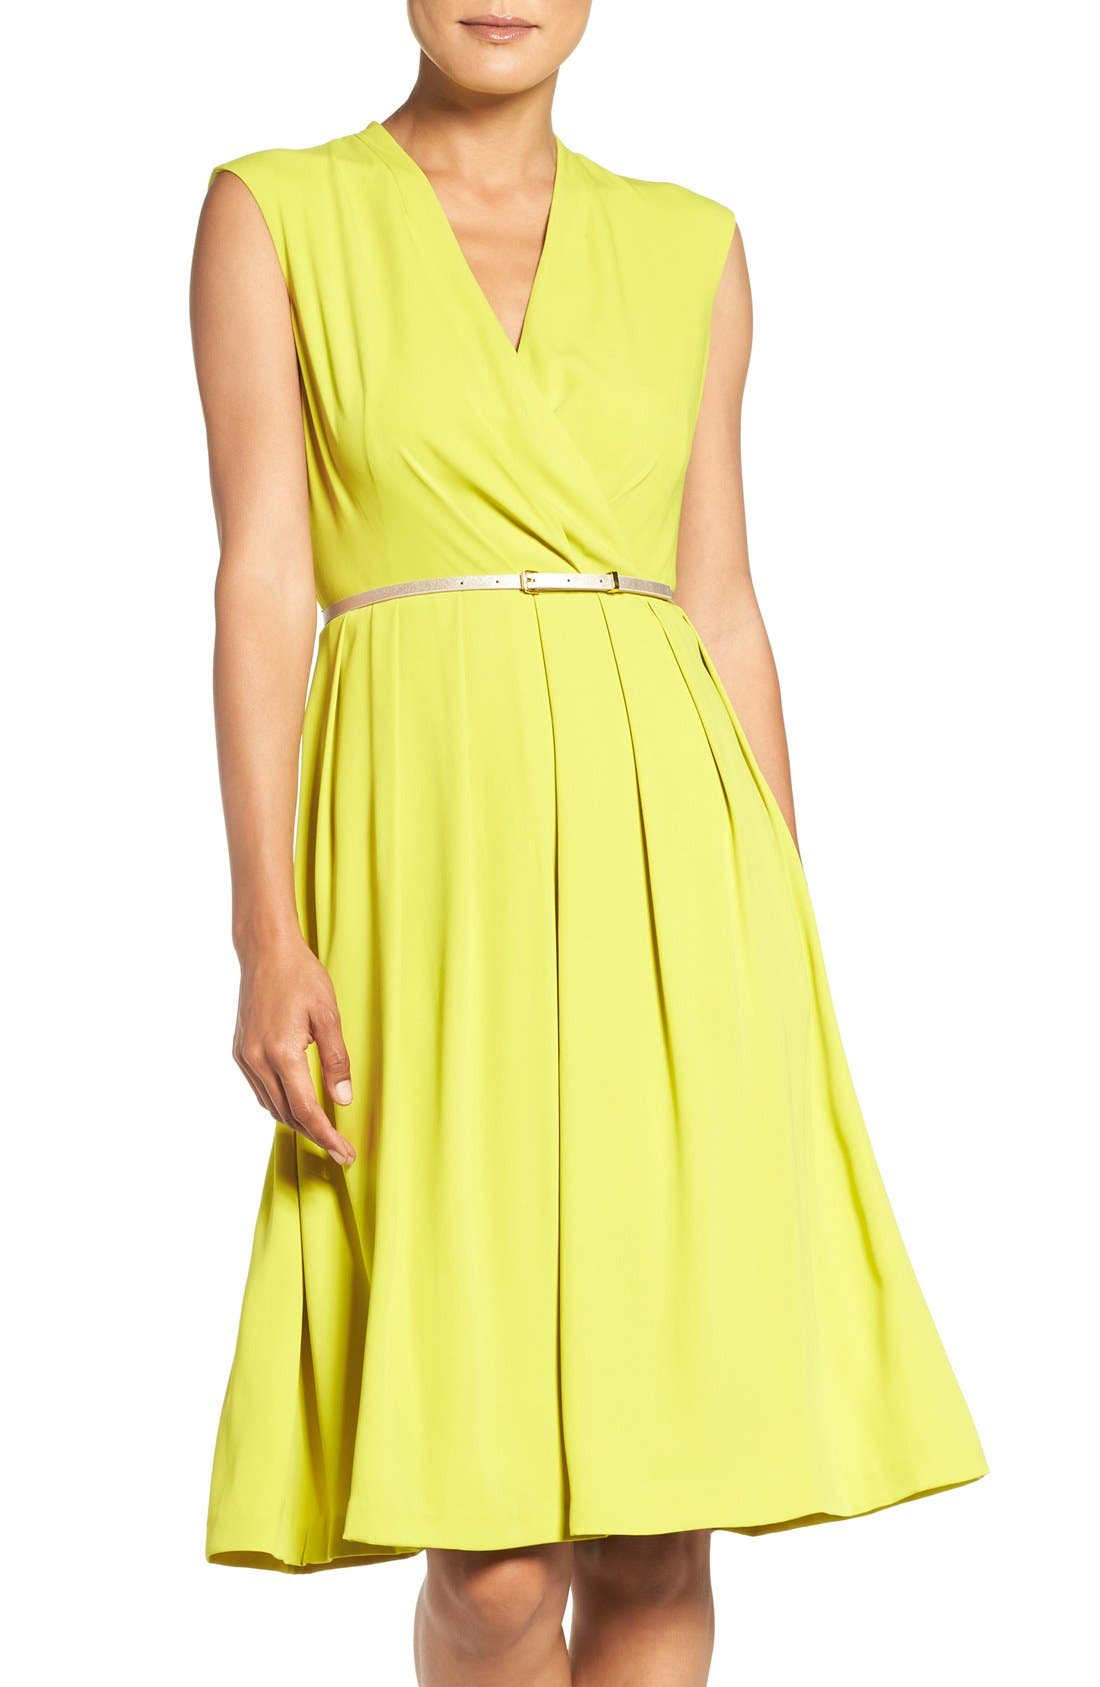 Alternate Image 1 Selected - Ellen Tracy Belted Woven Fit & Flare Dress (Regular & Petite)